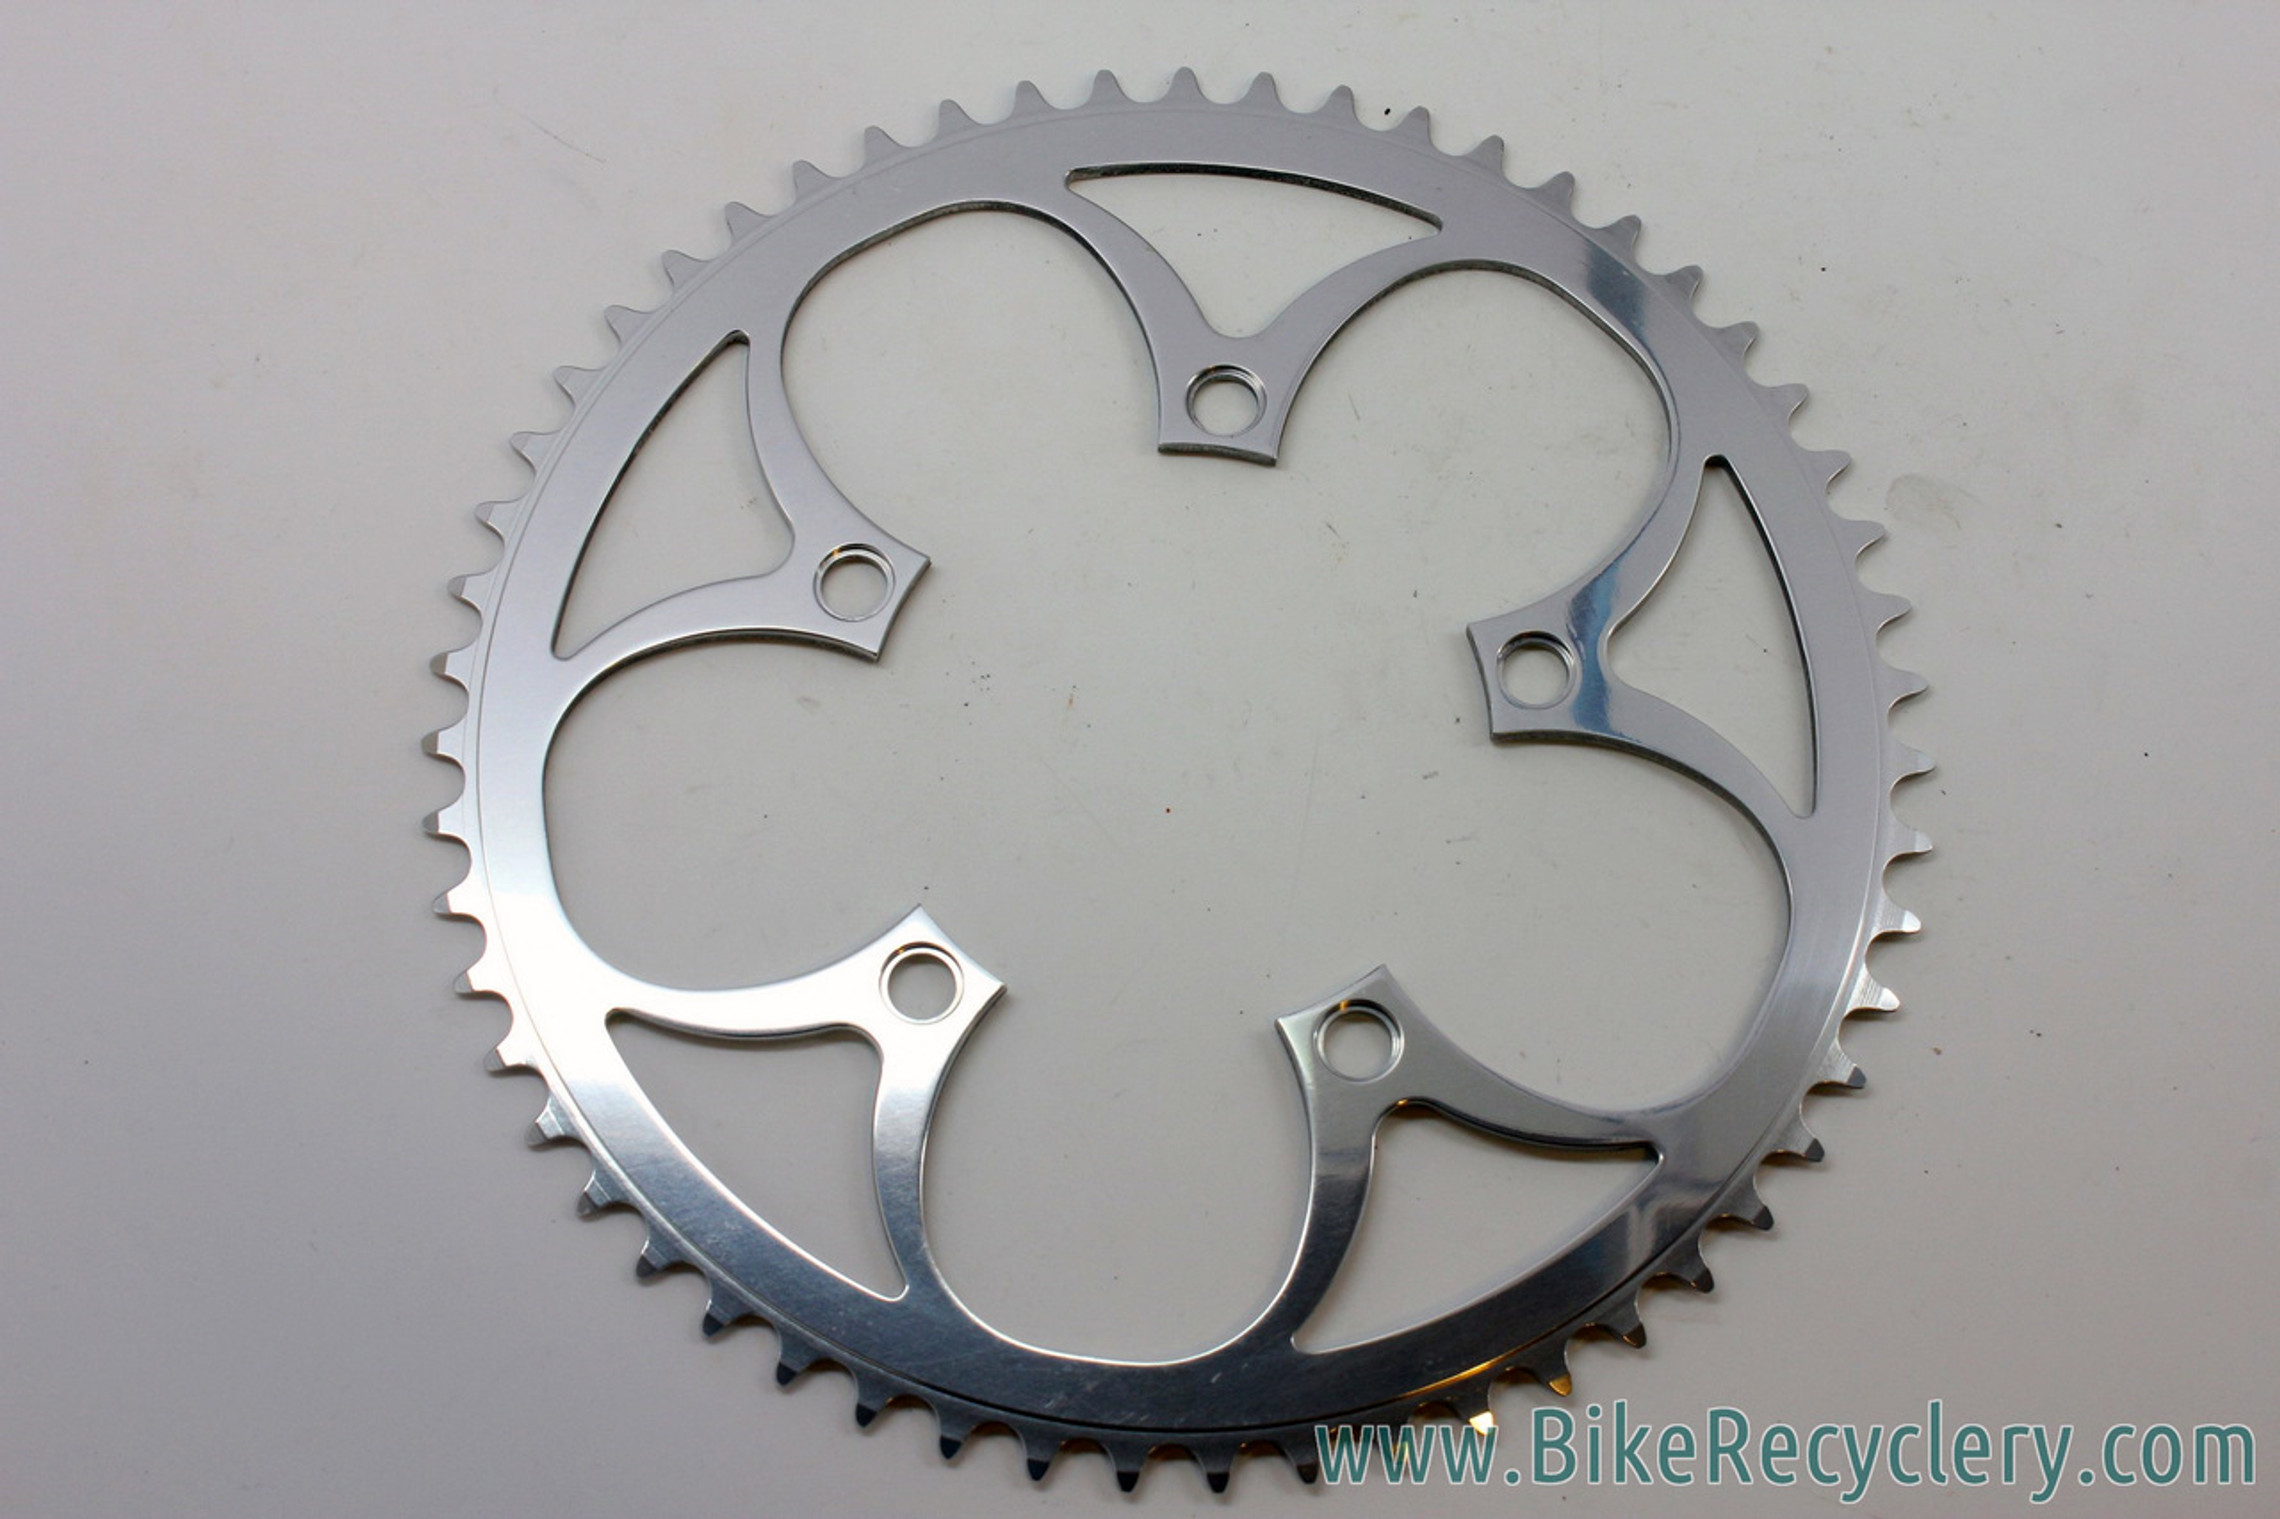 NOS Vintage Specialties TA Outer Chainring: 110mm - 55t (take off)